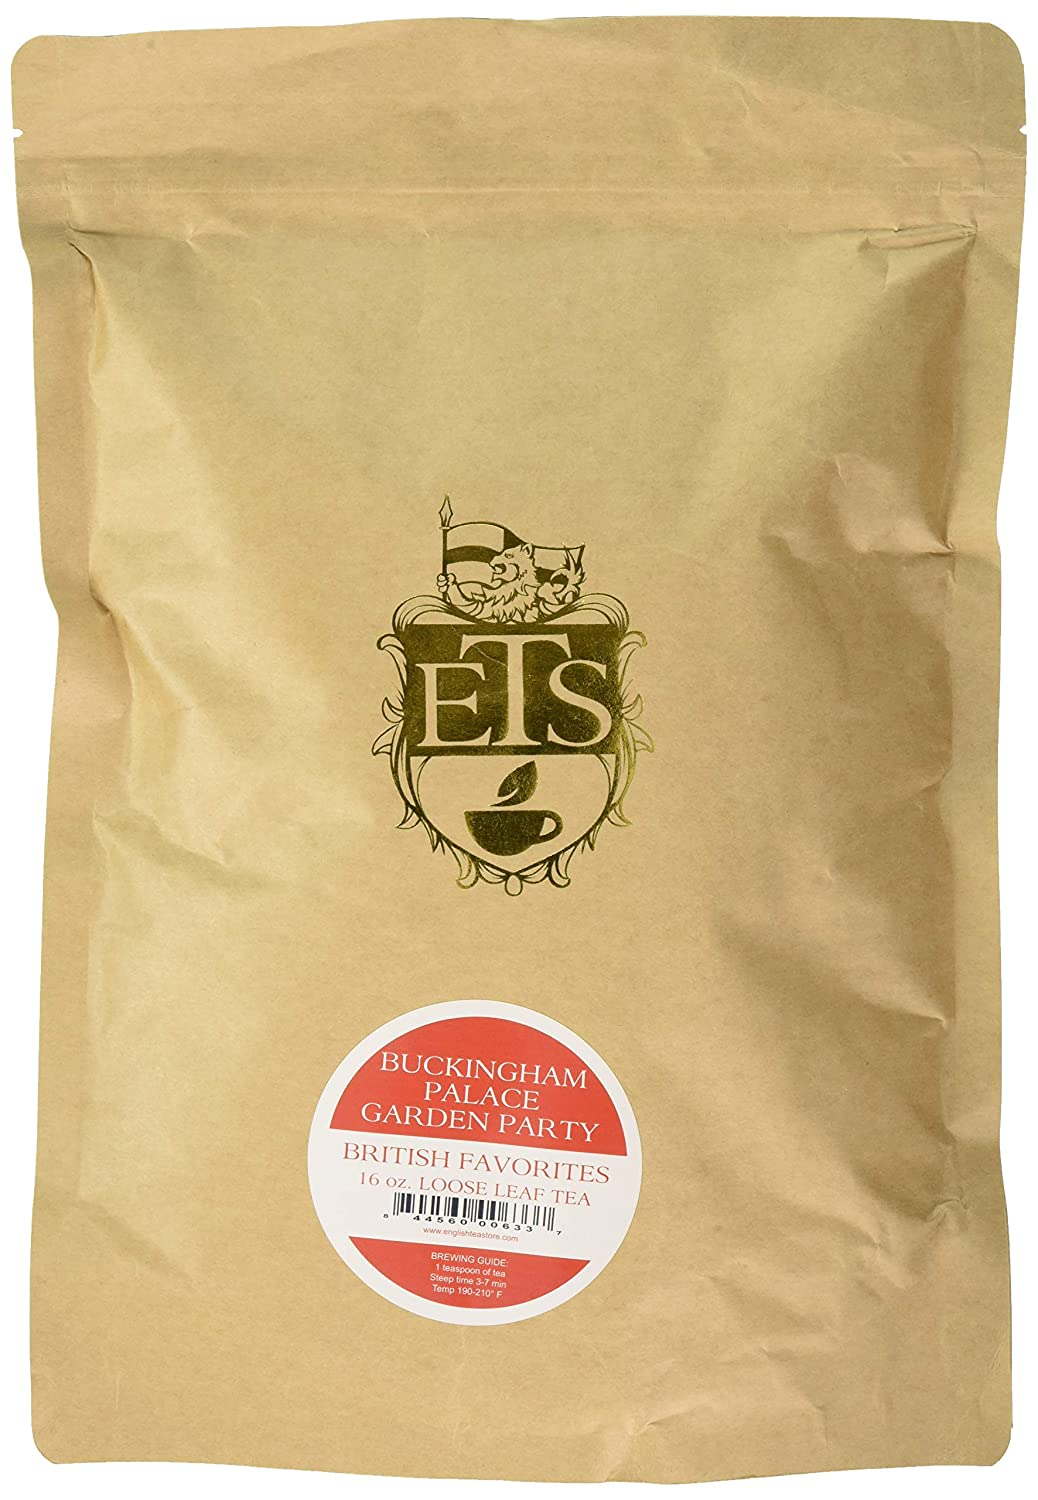 English Tea Store Loose Leaf Tea, Buckingham Palace Garden Party, 16 Ounce